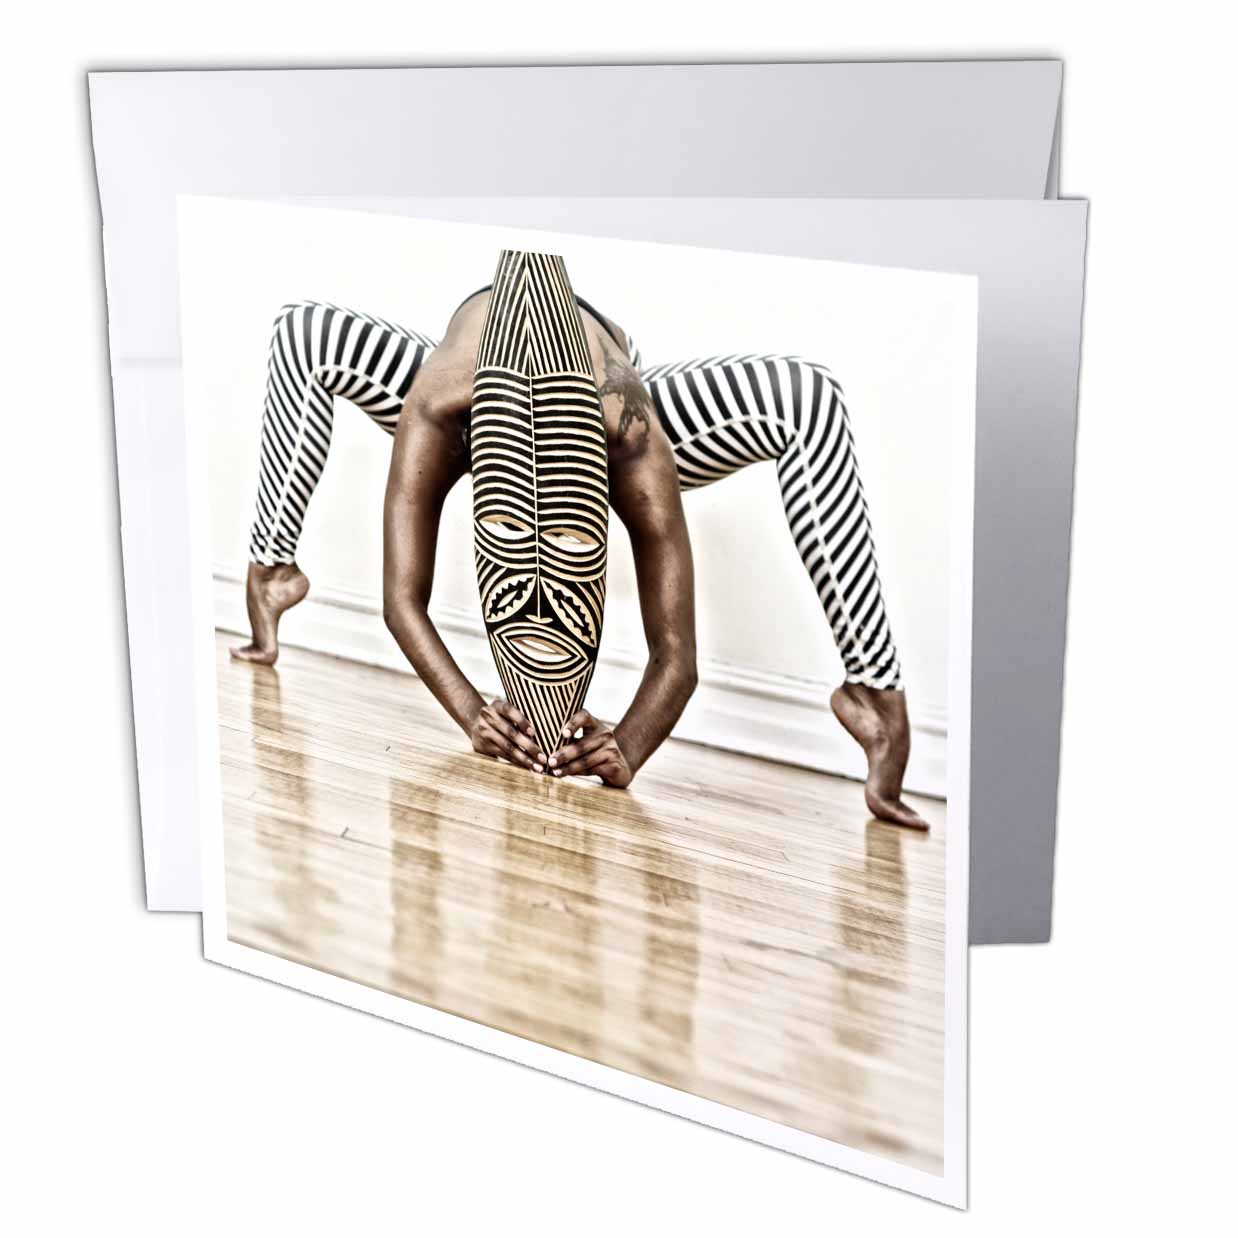 3dRose Yoga and dance with African Wooden Mask with zebra design , Greeting Cards, 6 x 6 inches, set of 12